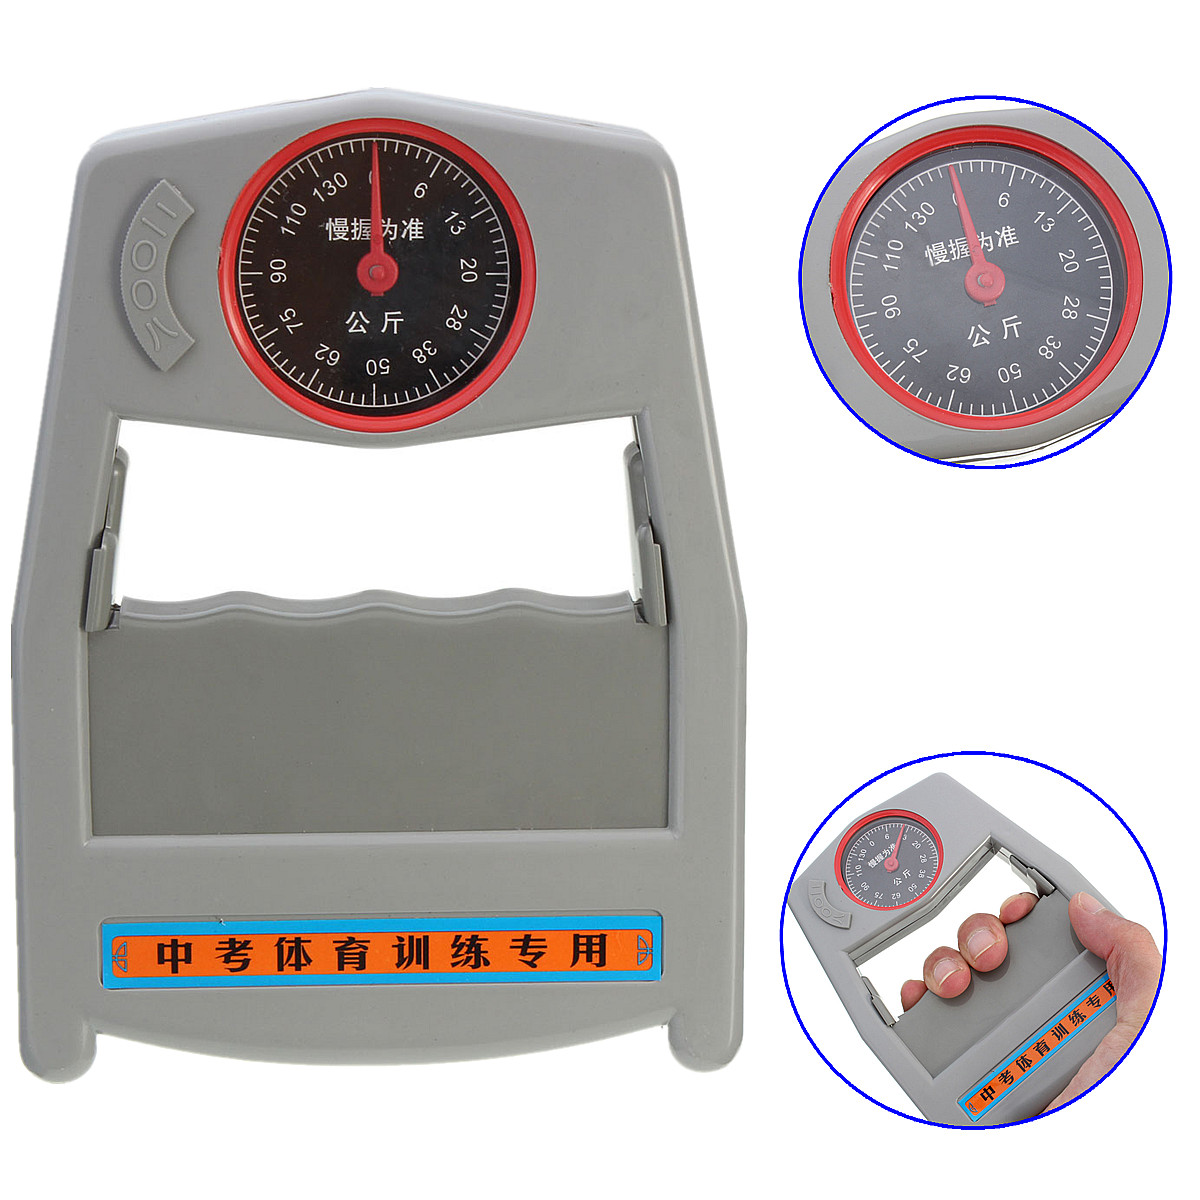 Dynamometer Horsepower Measurement : Kg hand evaluation dynamometer grip strength meter